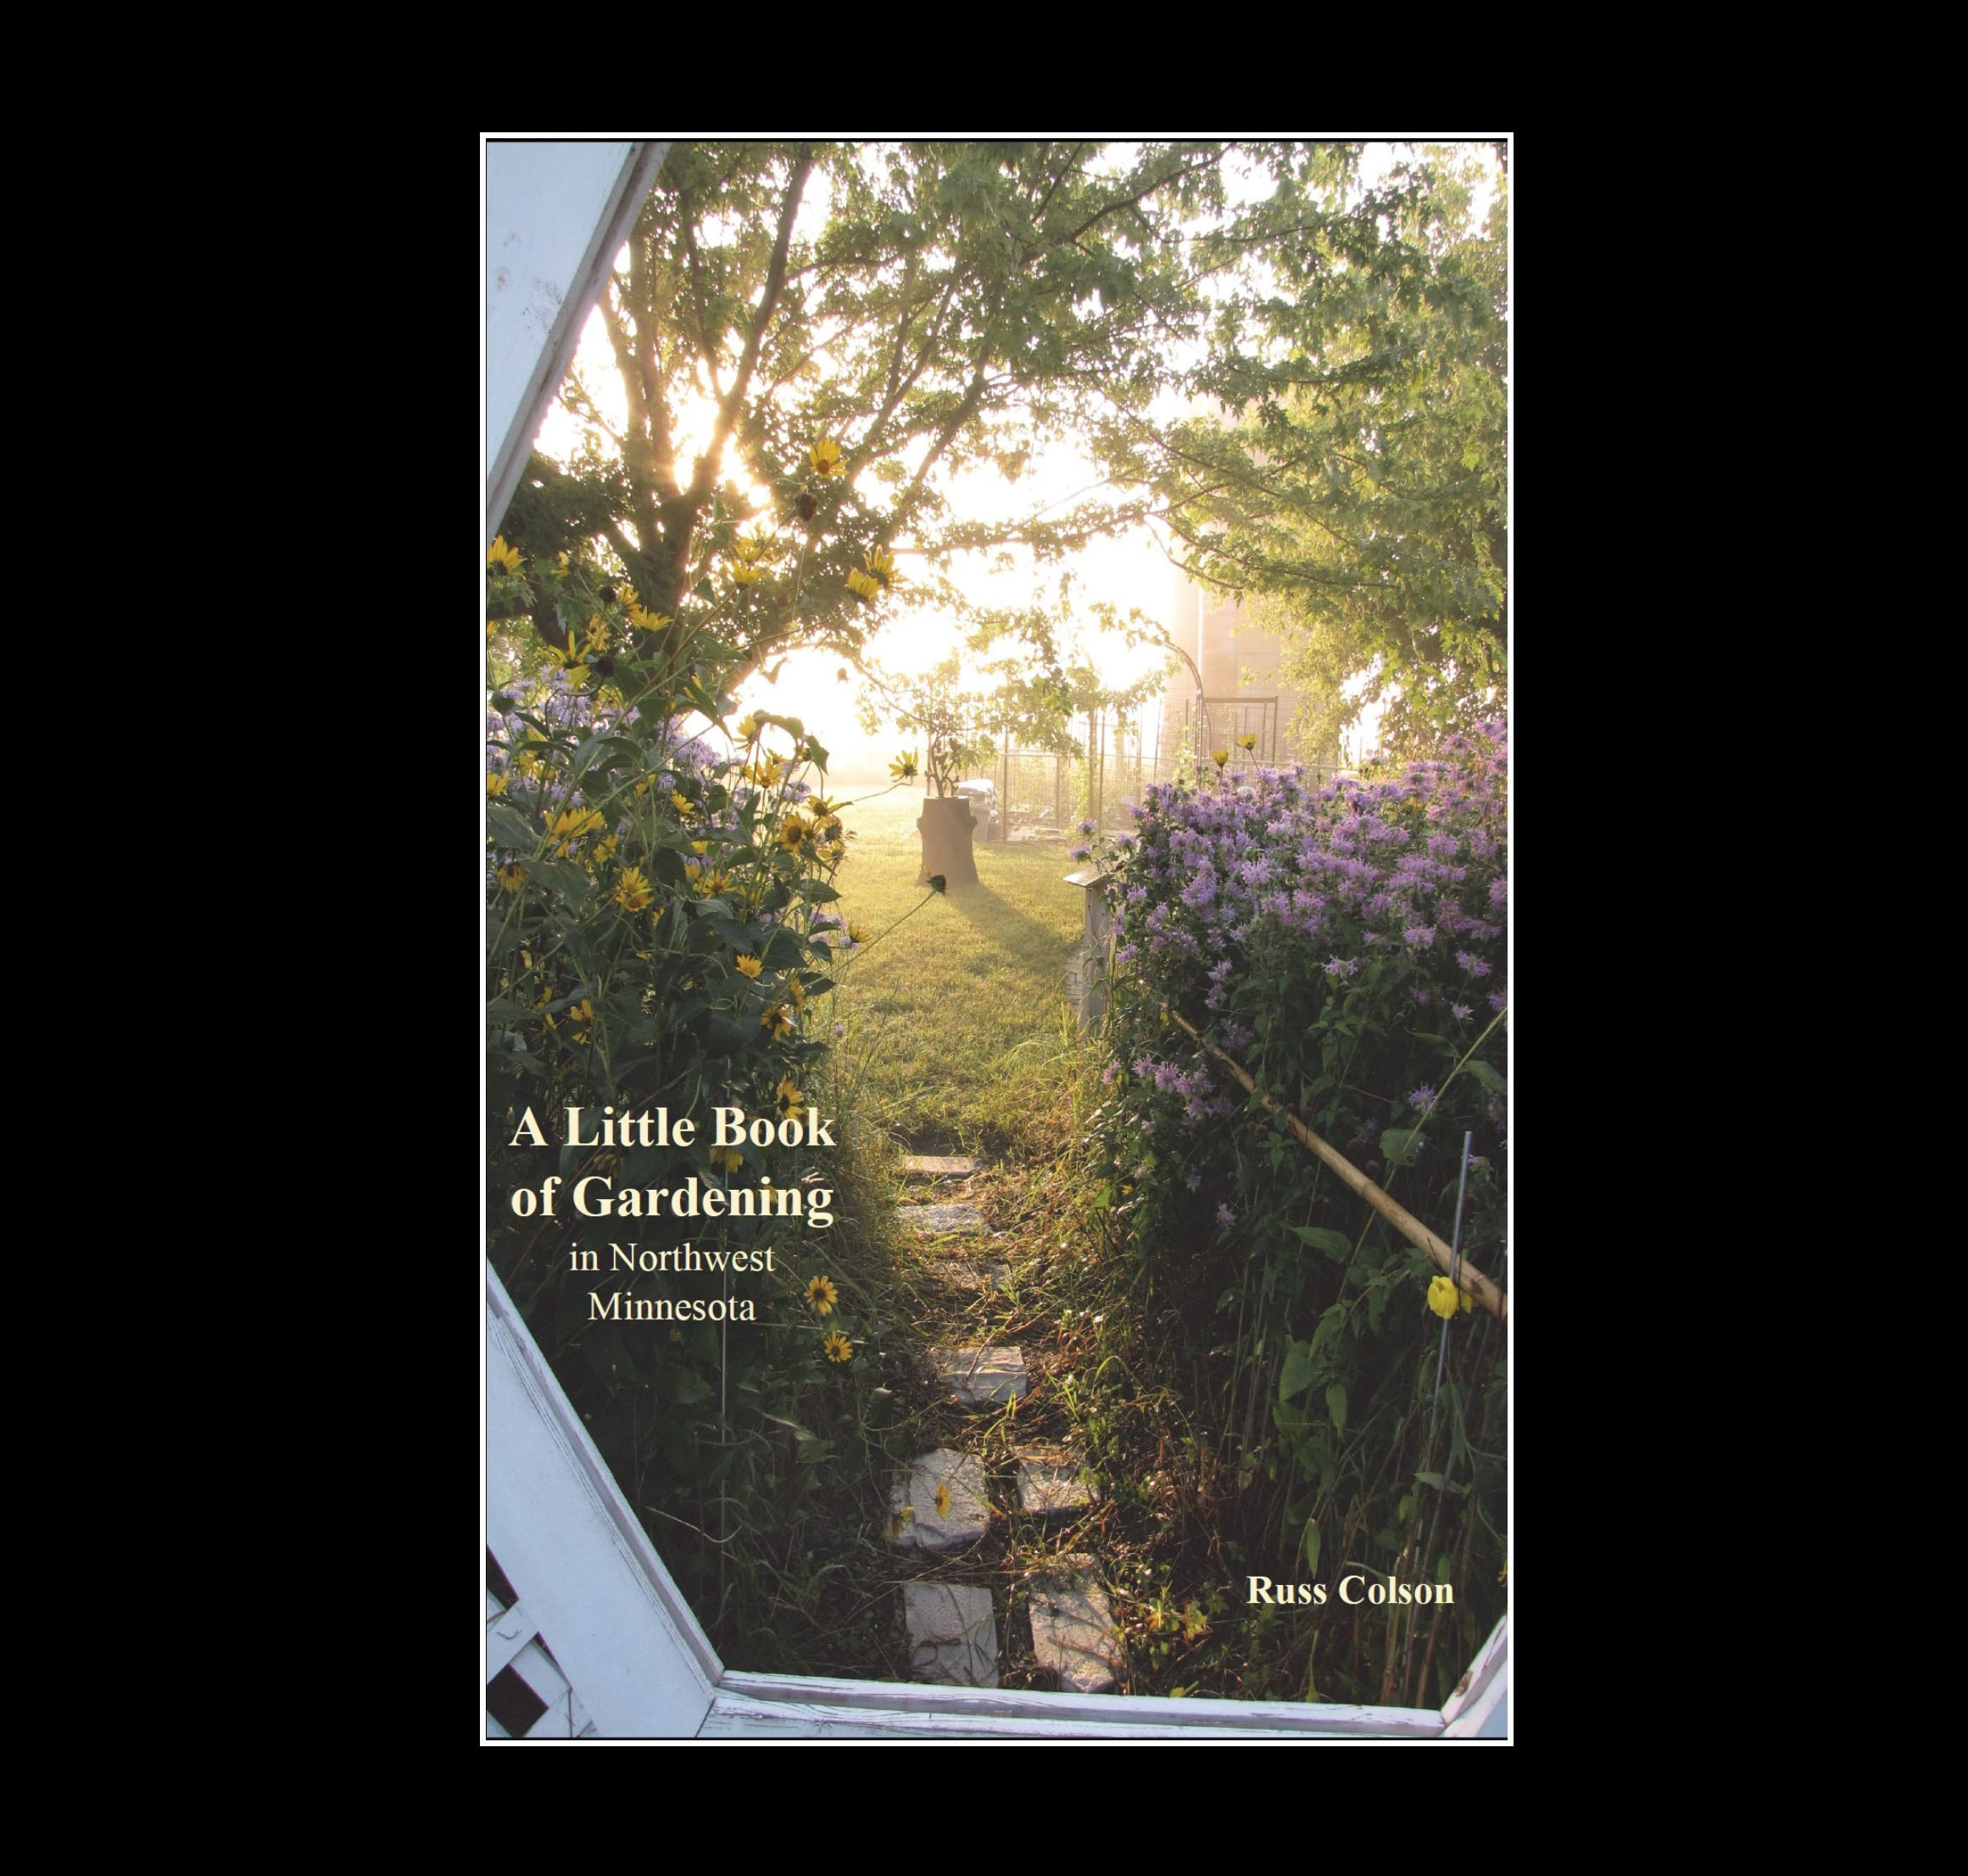 A Little Book of Gardening cover